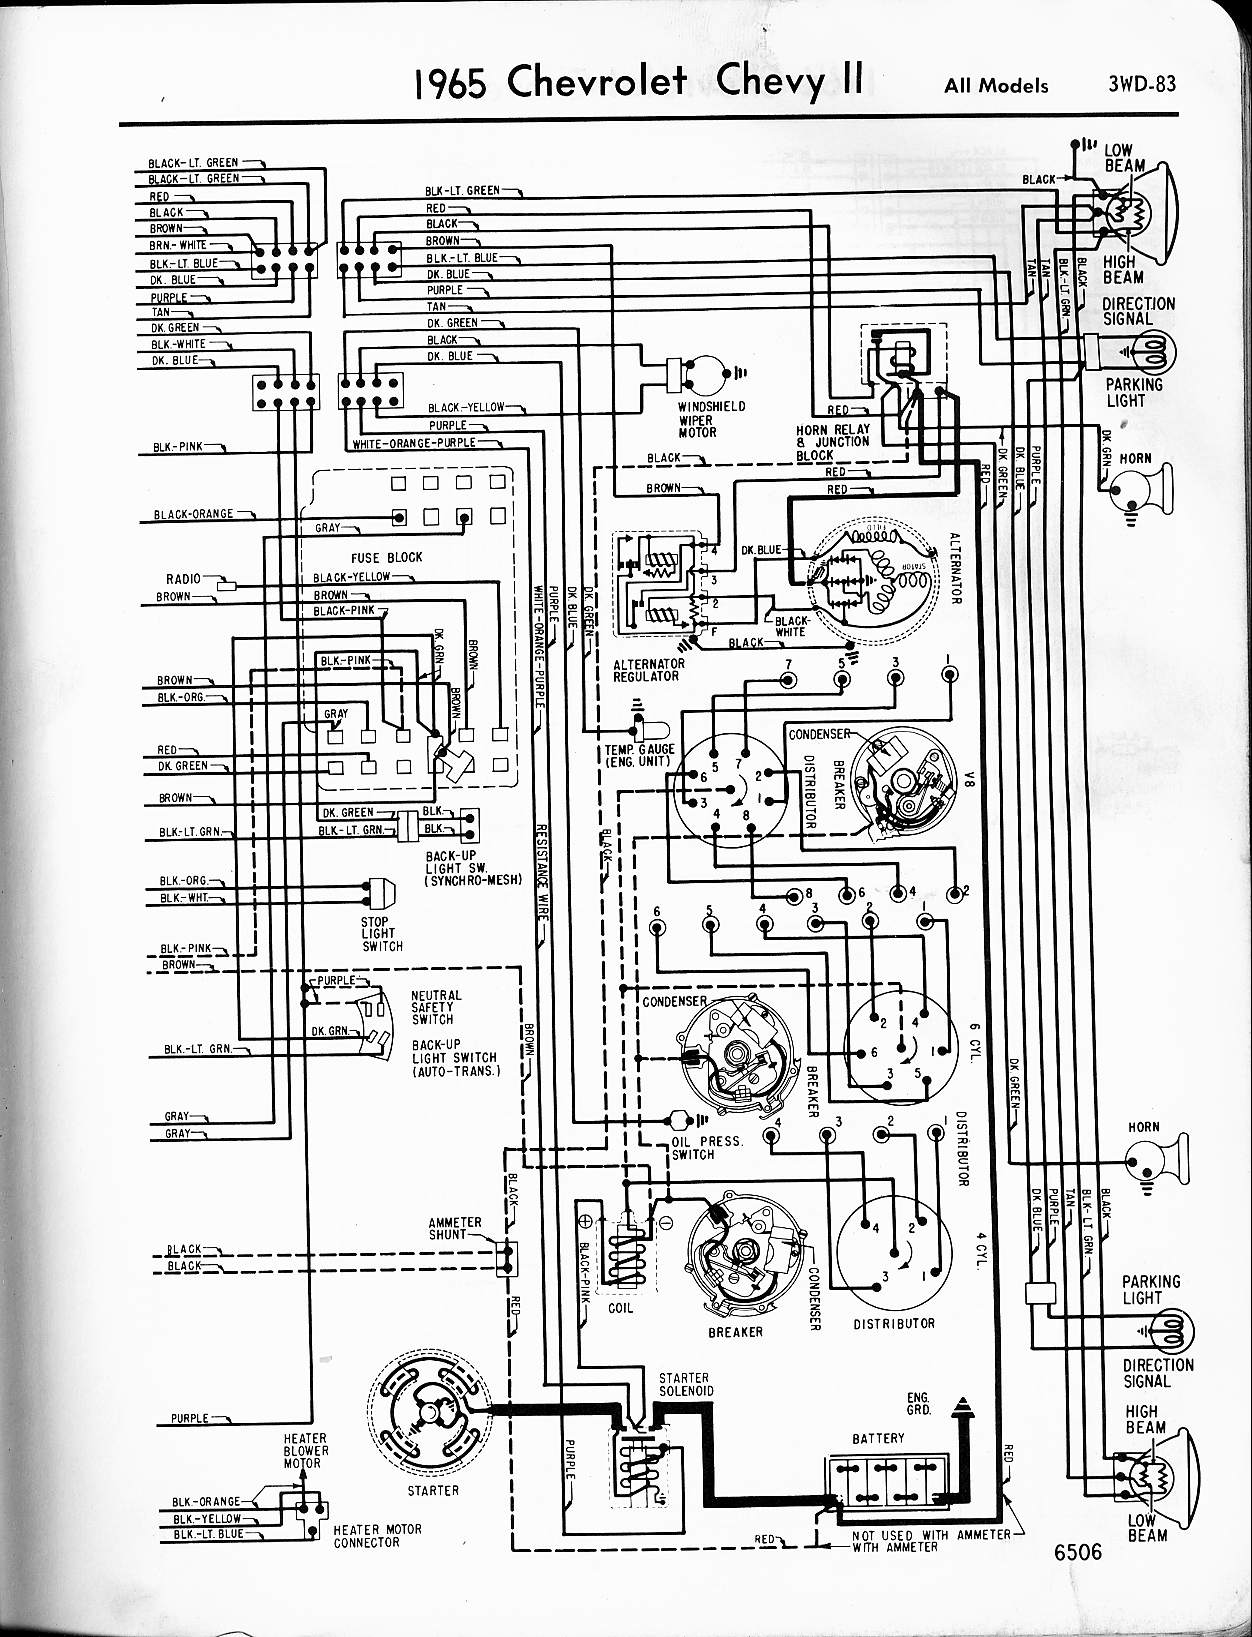 MWireChev65_3WD 083 64 falcon wiring diagram 64 comet ignition wiring \u2022 wiring proteam 1500xp wiring diagram at readyjetset.co